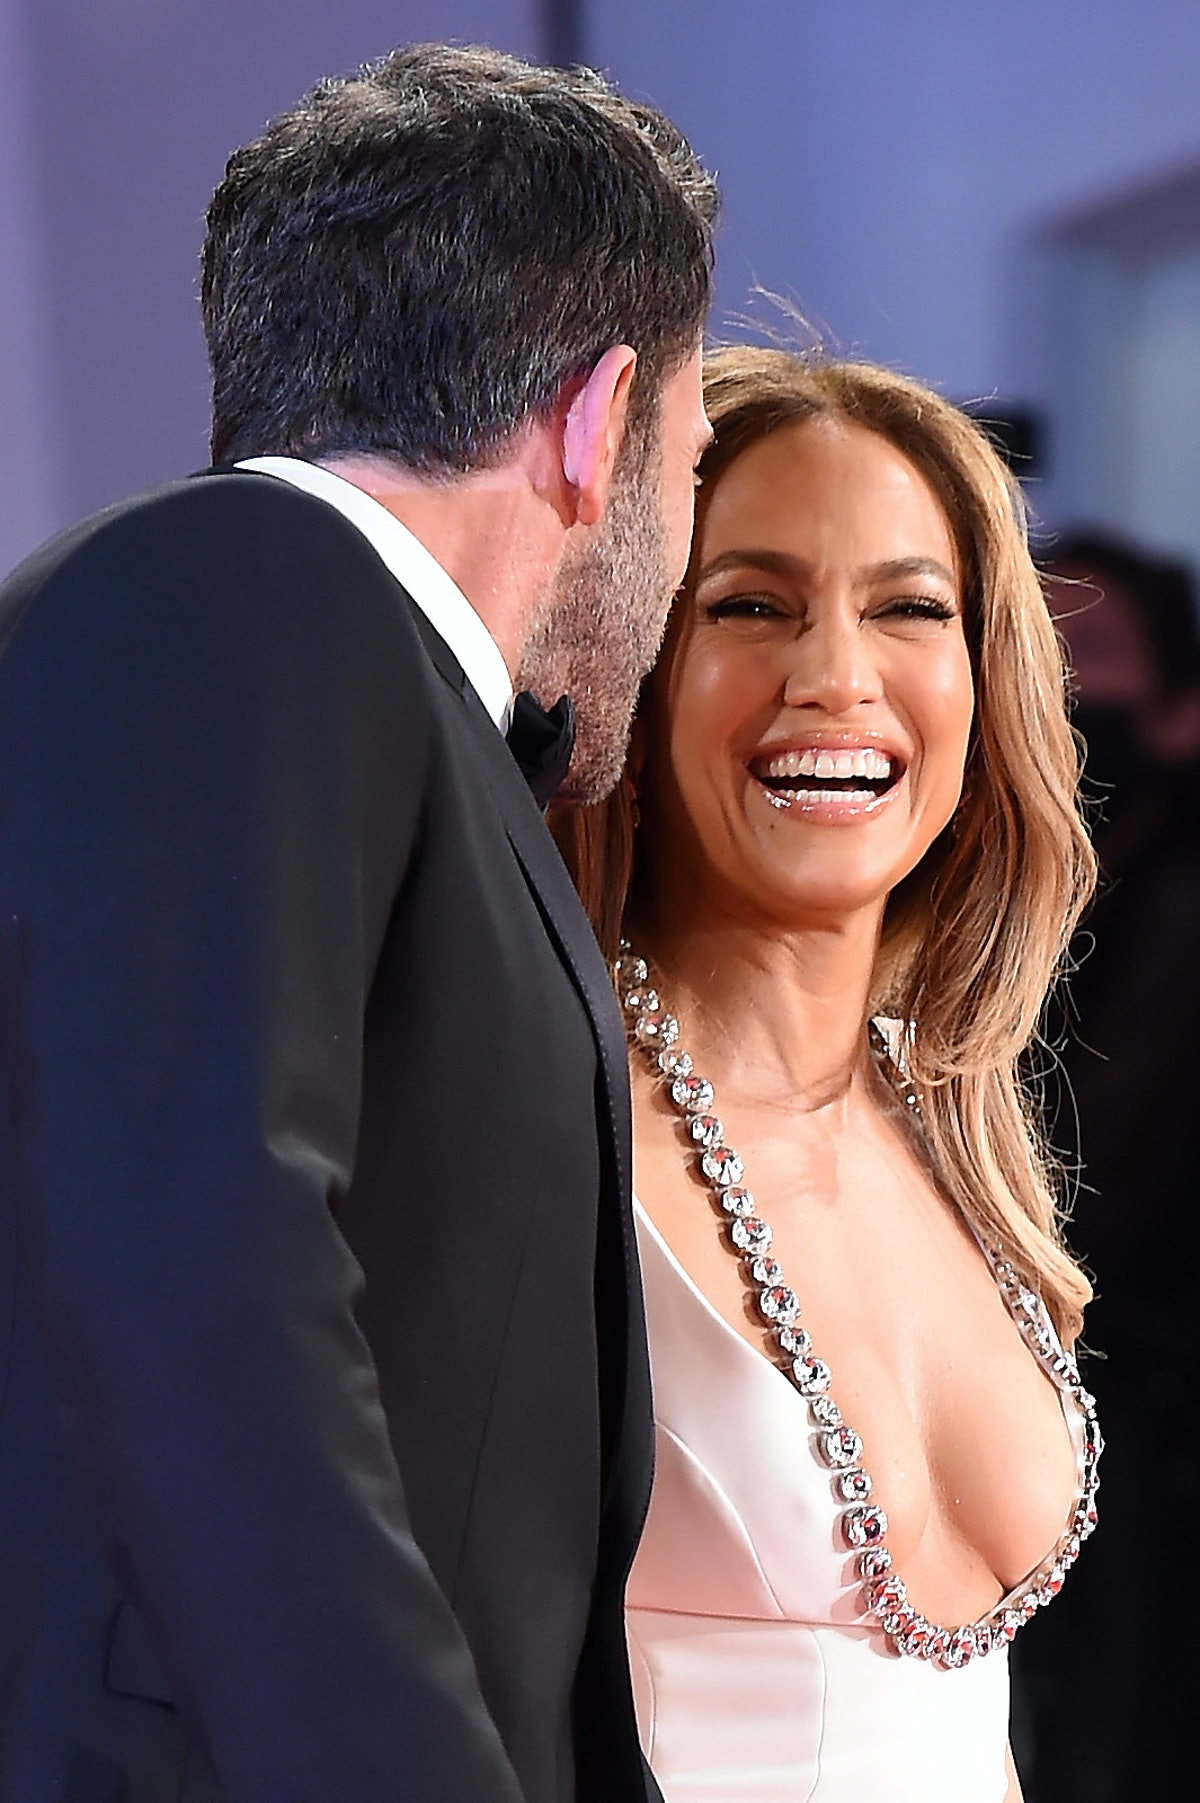 The pictures of Ben Affleck and Jennifer Lopez at the red carpet premiere of 'The Last Duel' mark th...